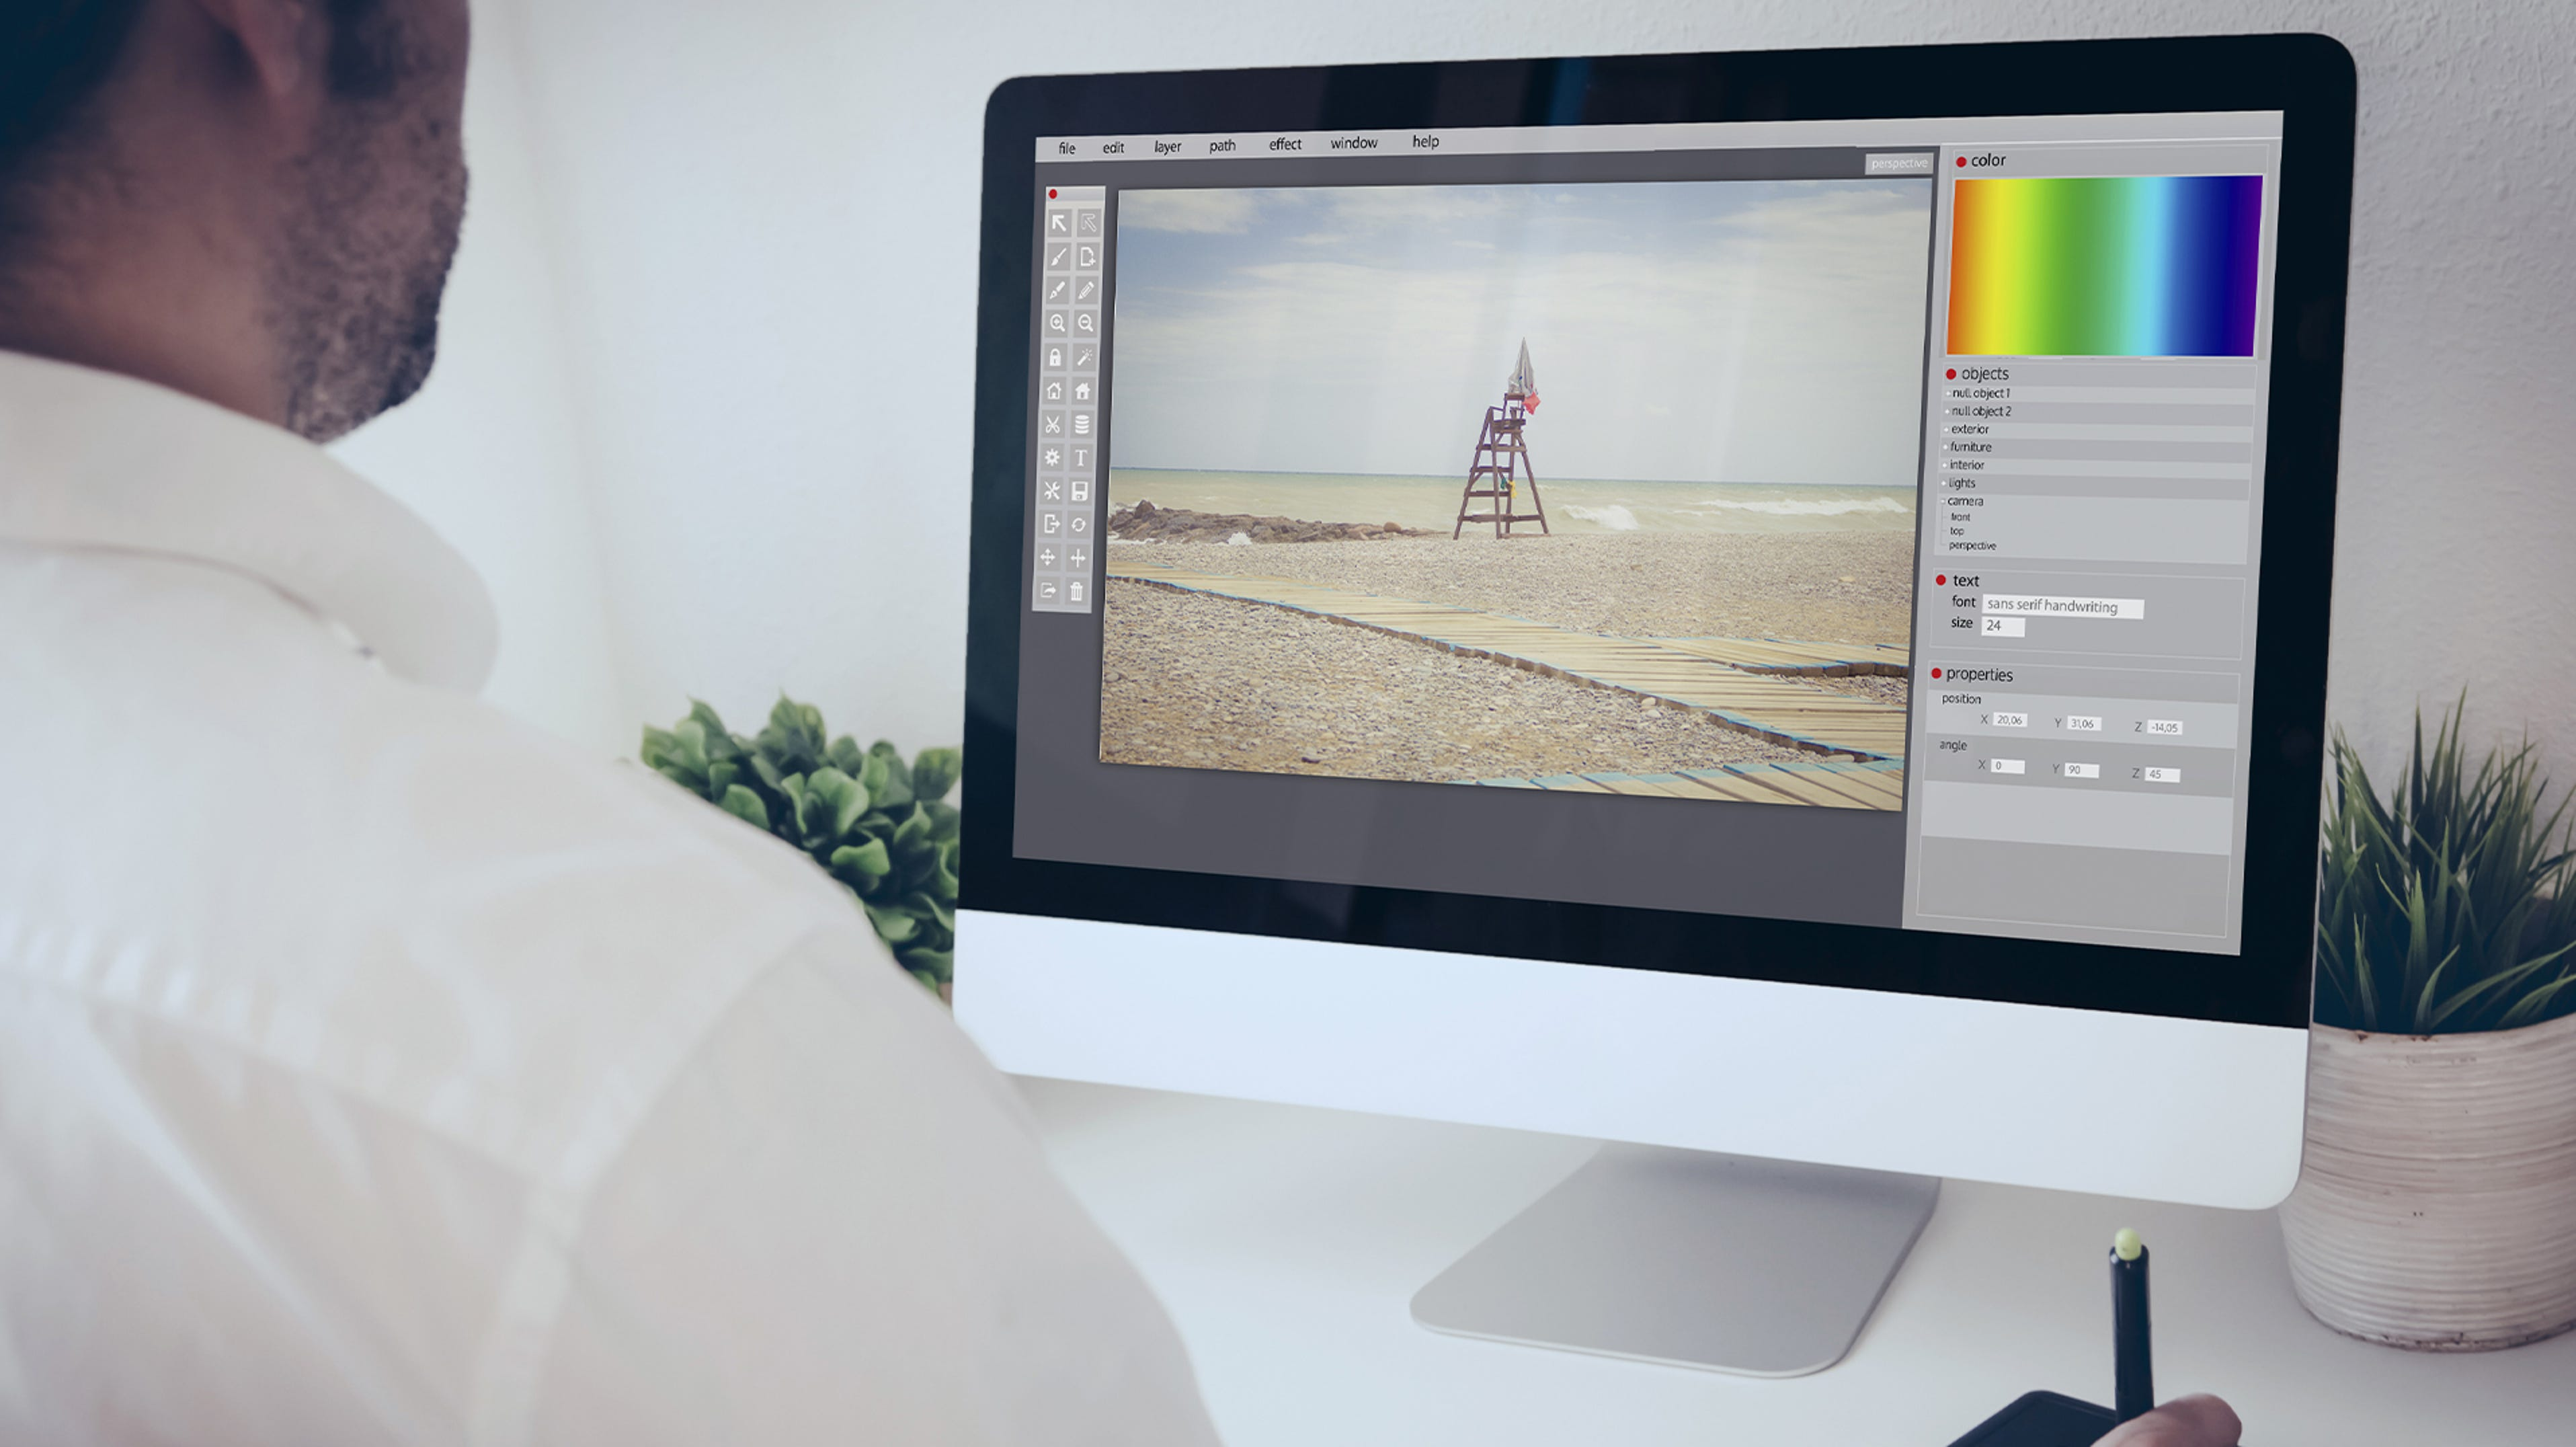 7 Great Photo Editors on Windows for Hobbyists and Professionals Alike